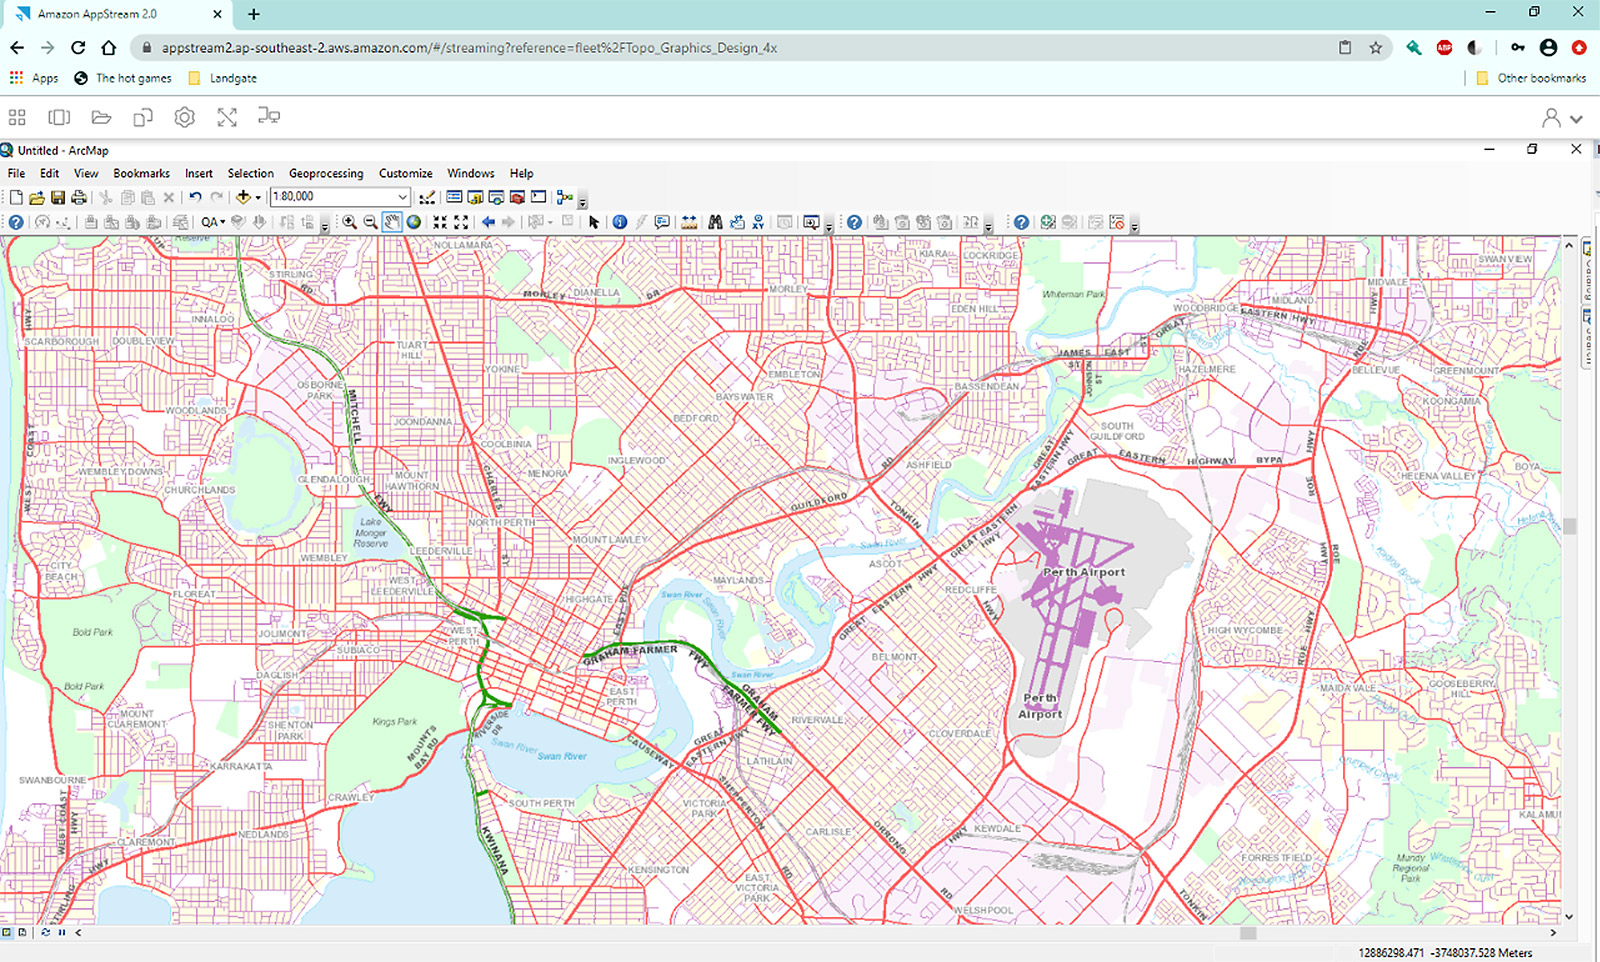 An example of a top-down view of a detailed street map of the Perth Metro area generated from within Amazon AppStream